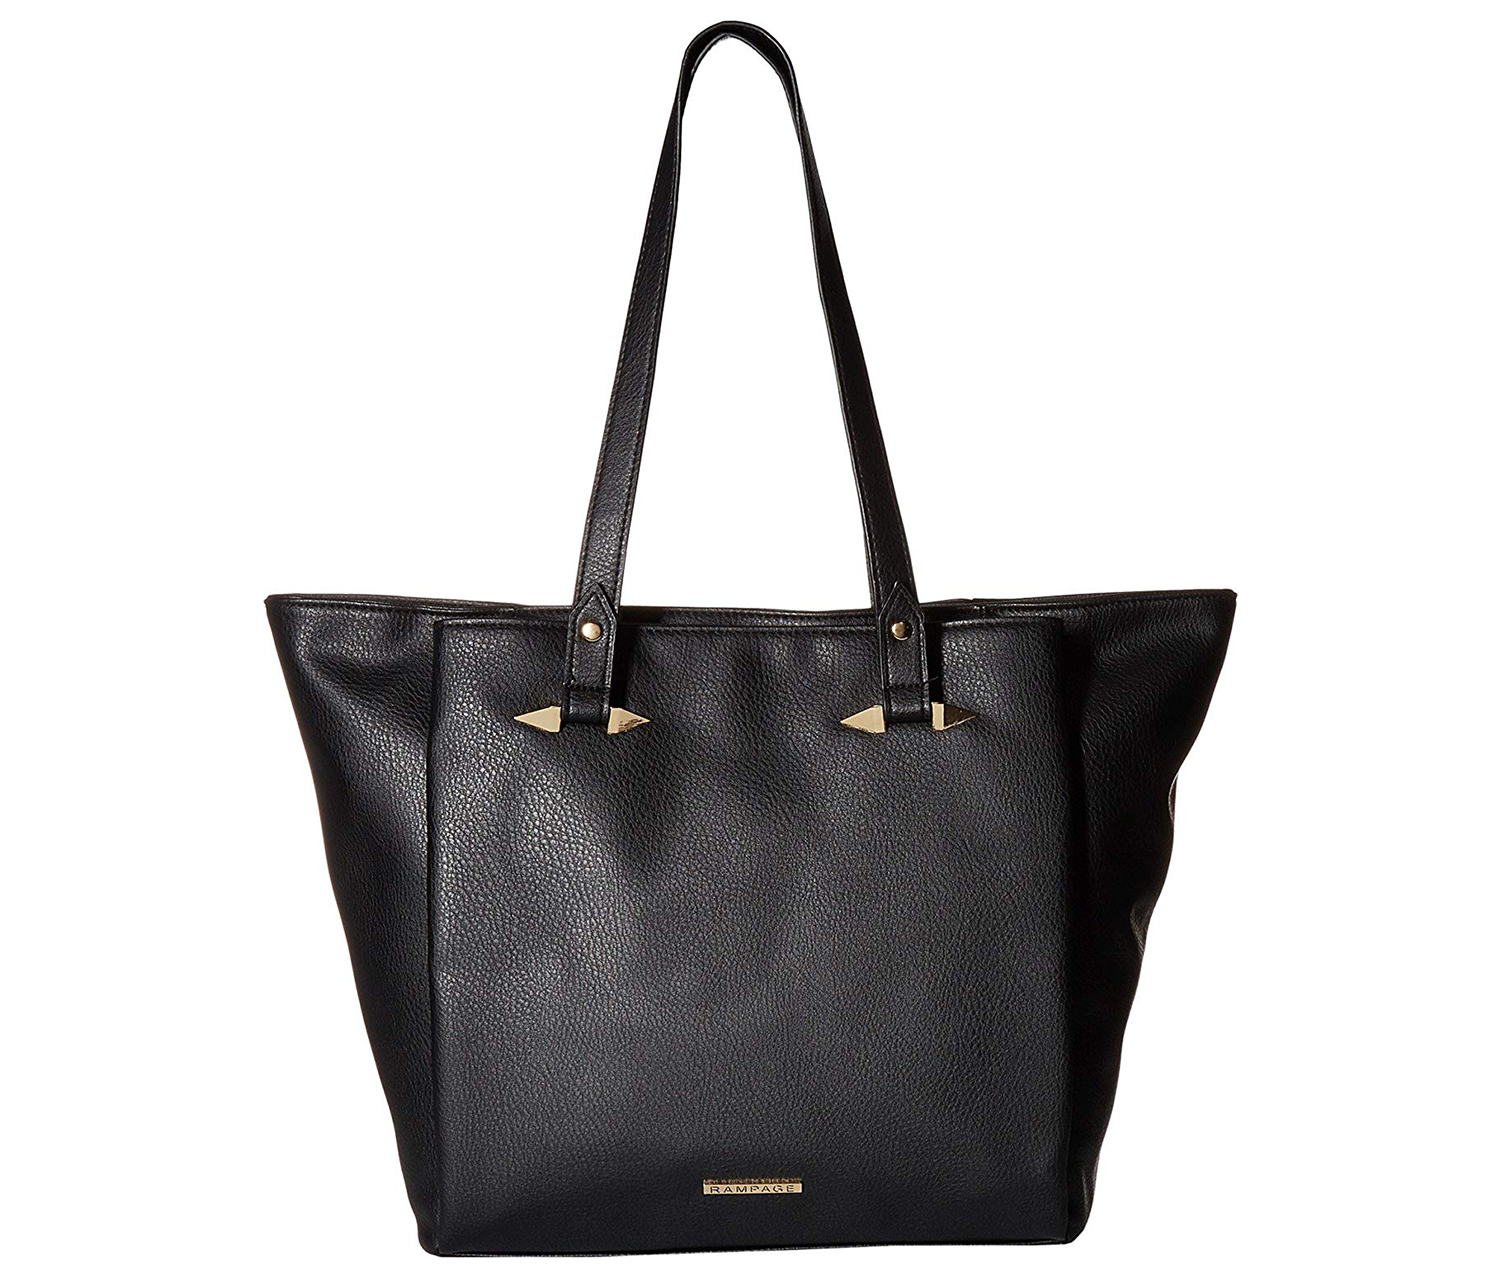 Rampage Women's Tote with Handle Hardware, Black